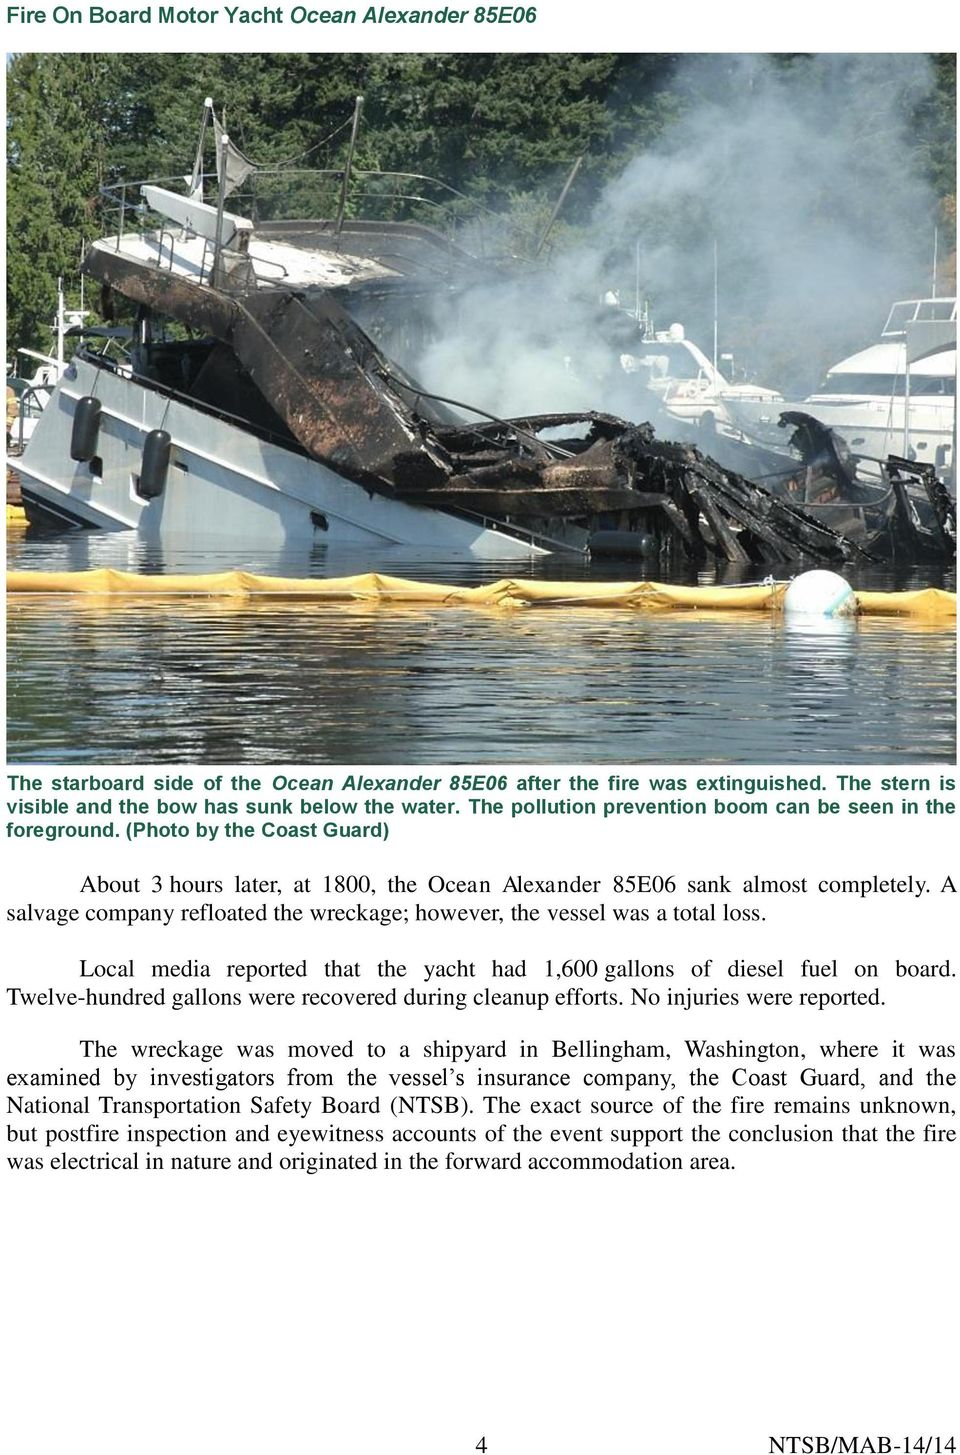 Local media reported that the yacht had 1,600 gallons of diesel fuel on board. Twelve-hundred gallons were recovered during cleanup efforts. No injuries were reported.